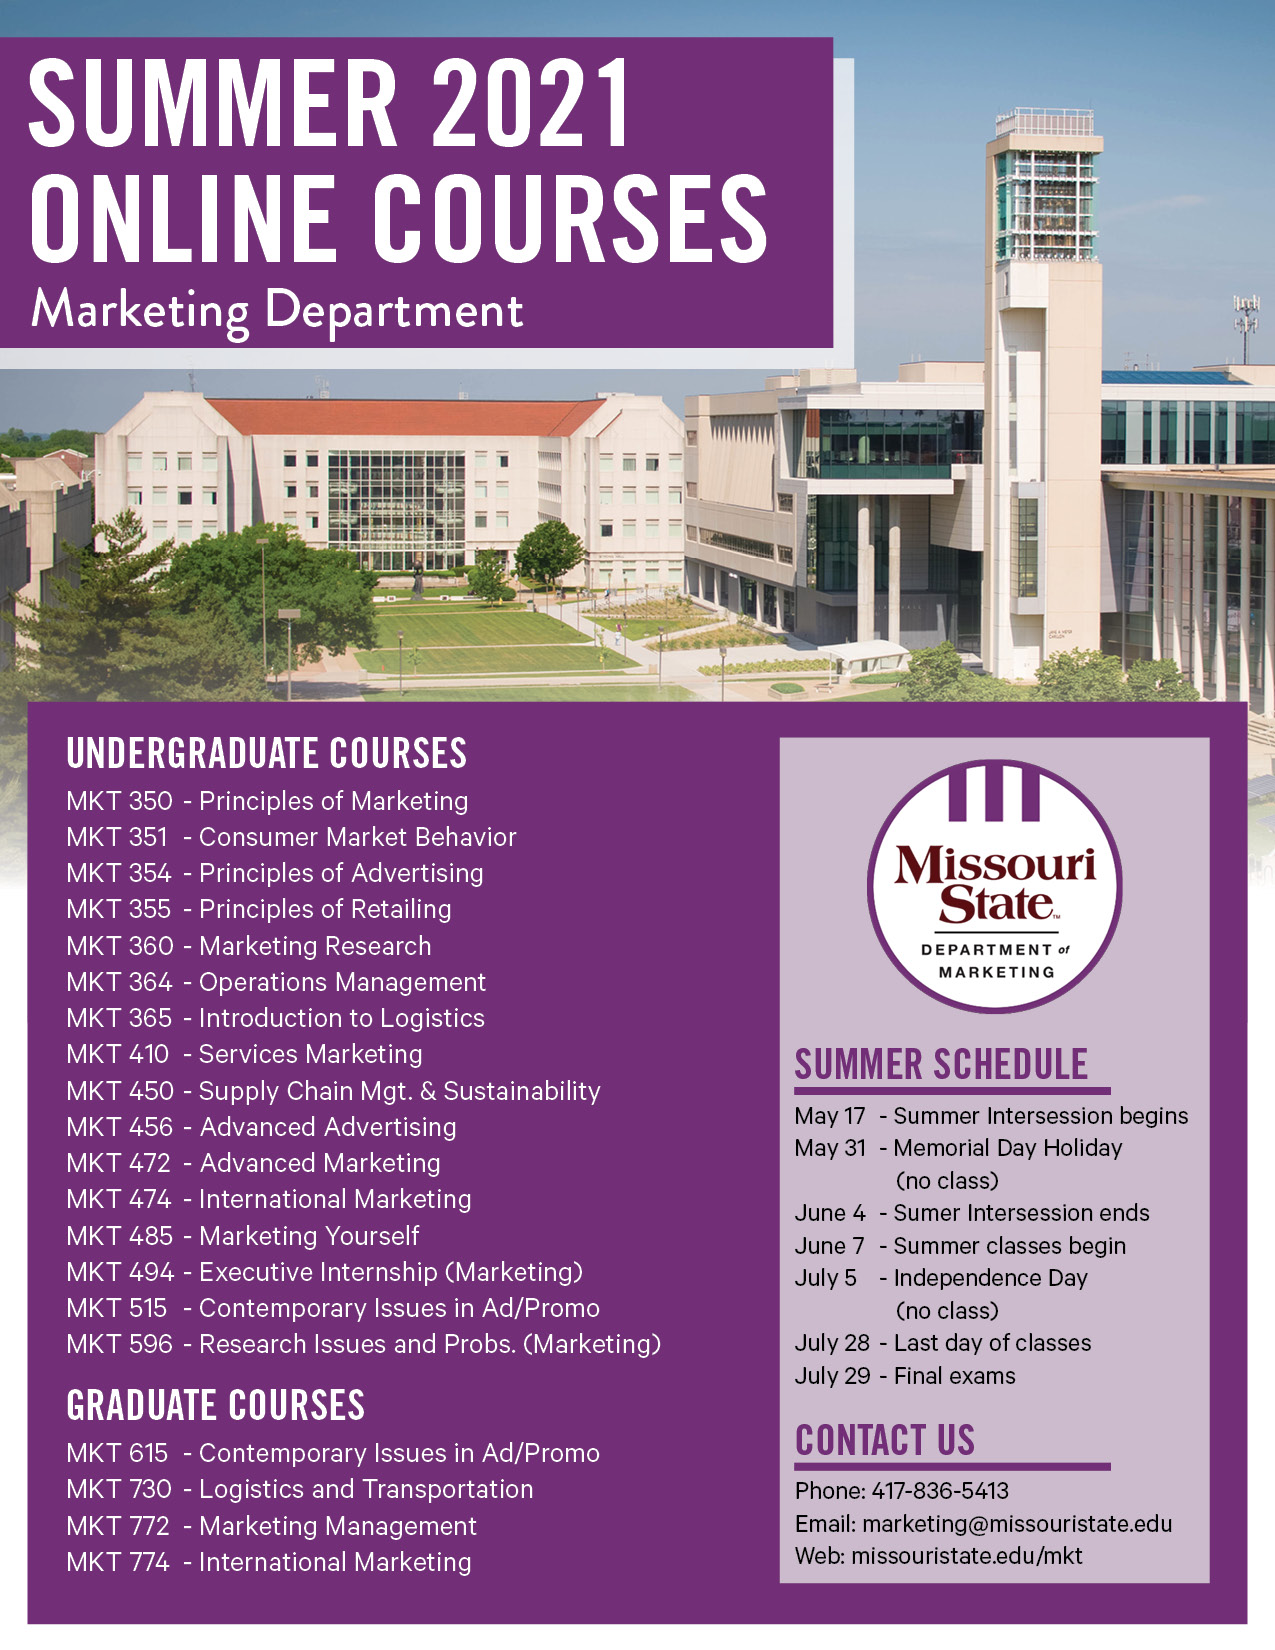 Summer courses for summer 2021.